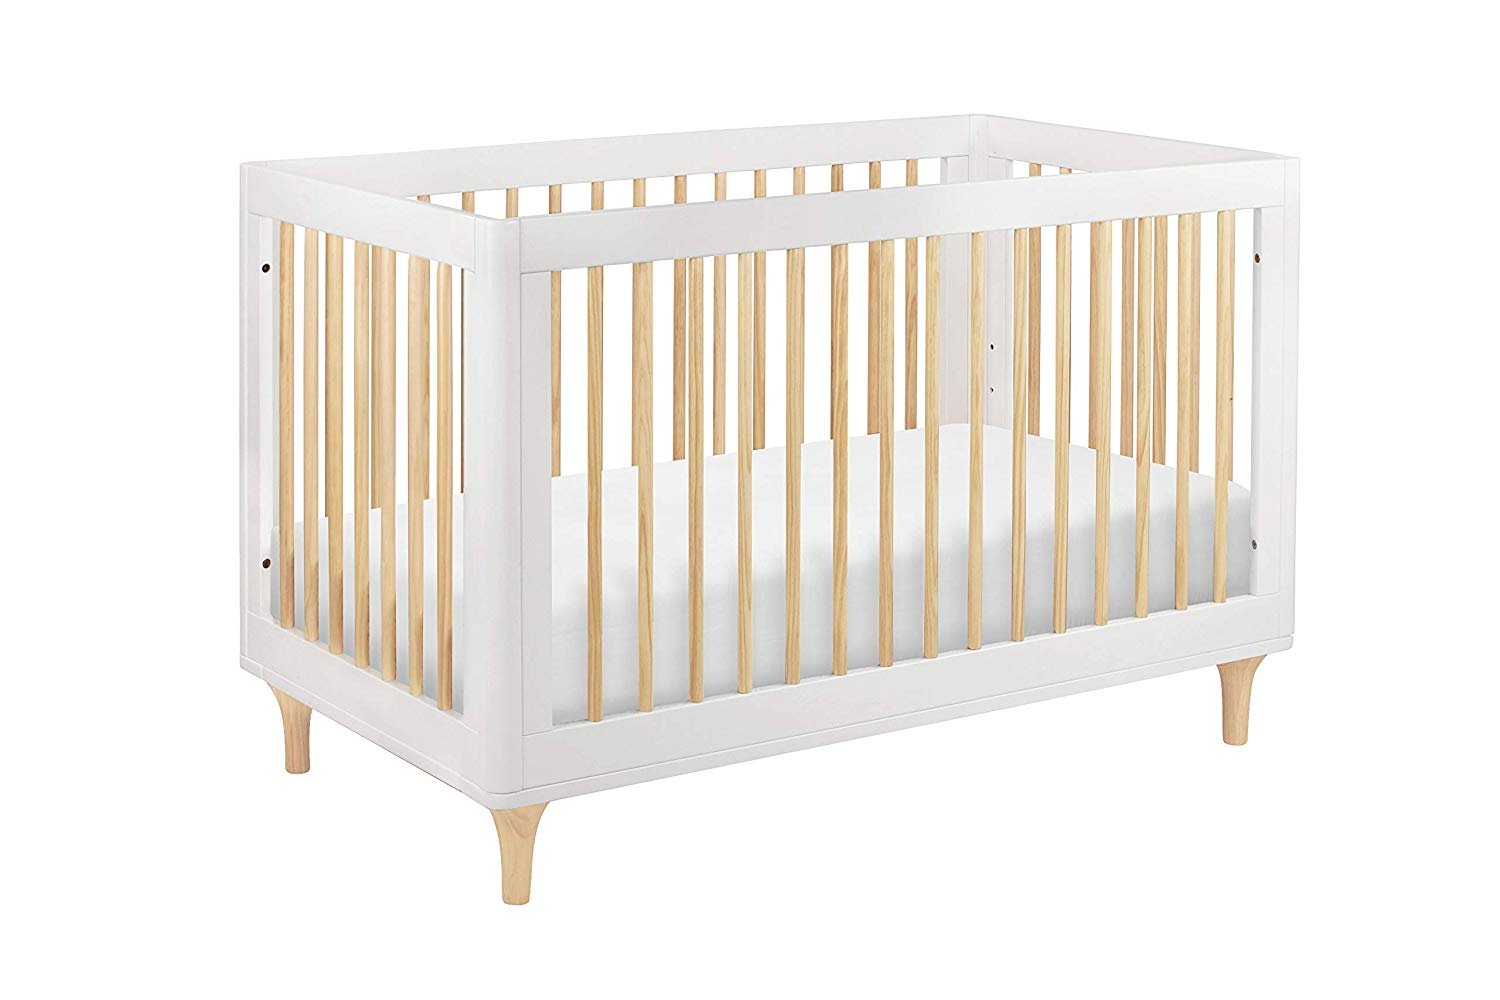 Babyletto Best Cribs Review by www.snoremagazine.com